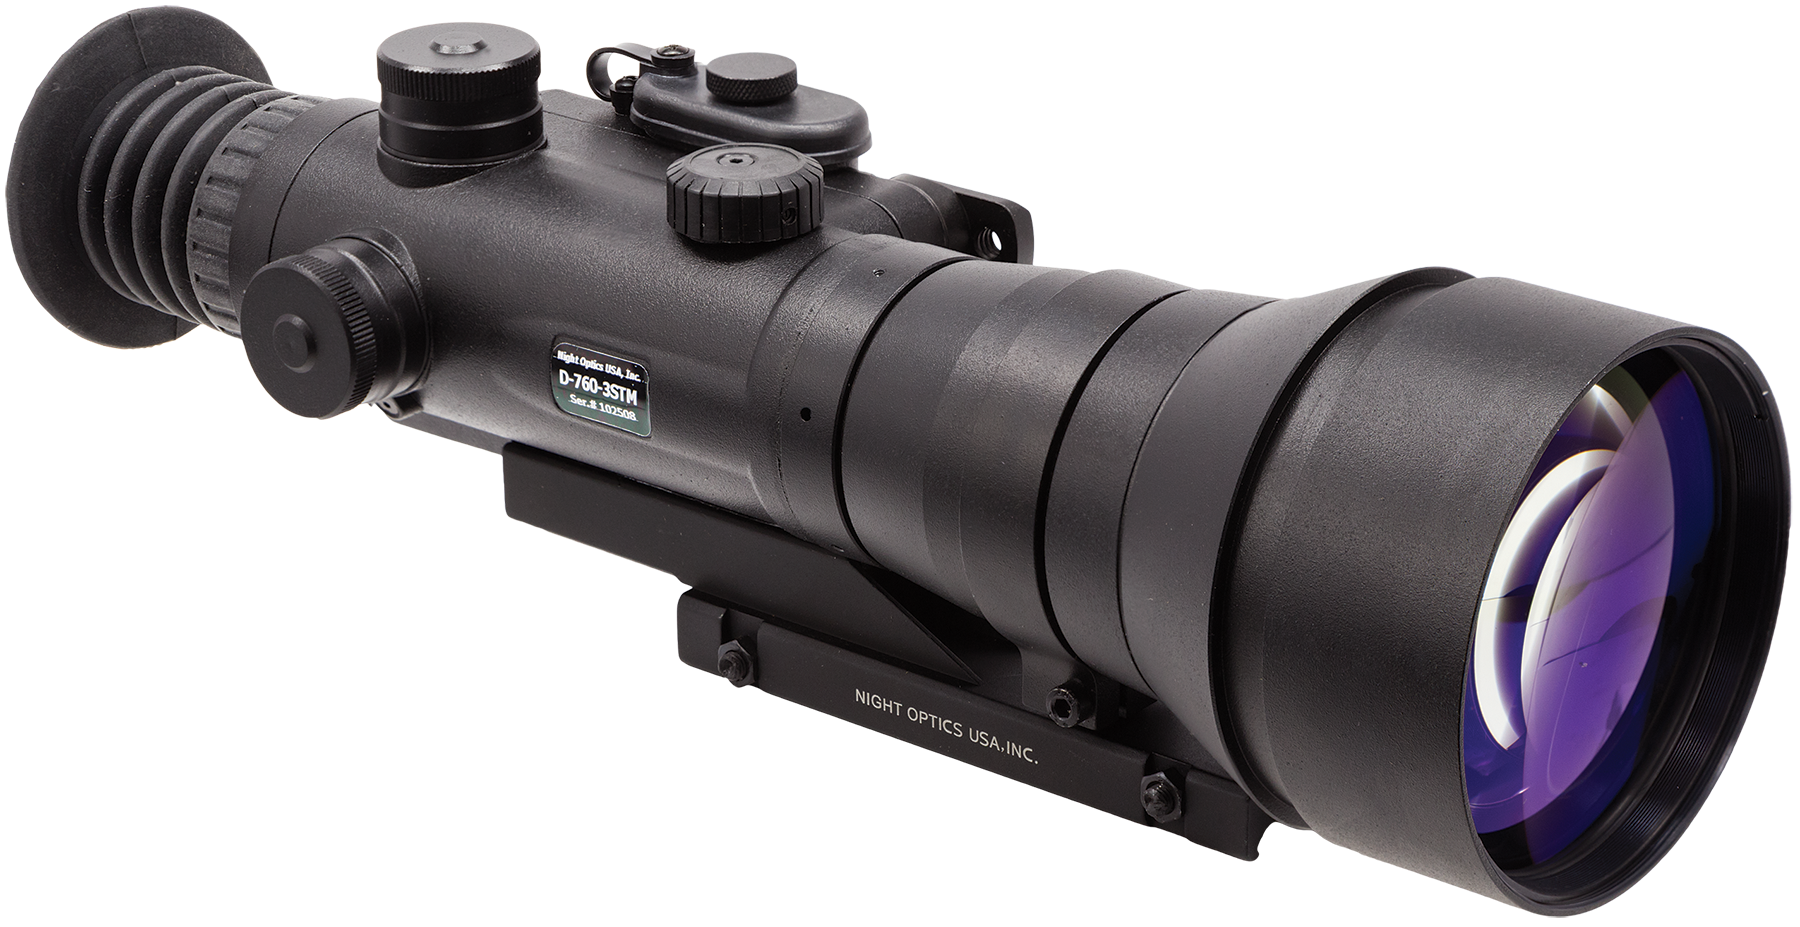 Night Optics NW7603SM D-760 Night Vision Scope Gen 3 6x 165mm 420 ft @ 1000yds